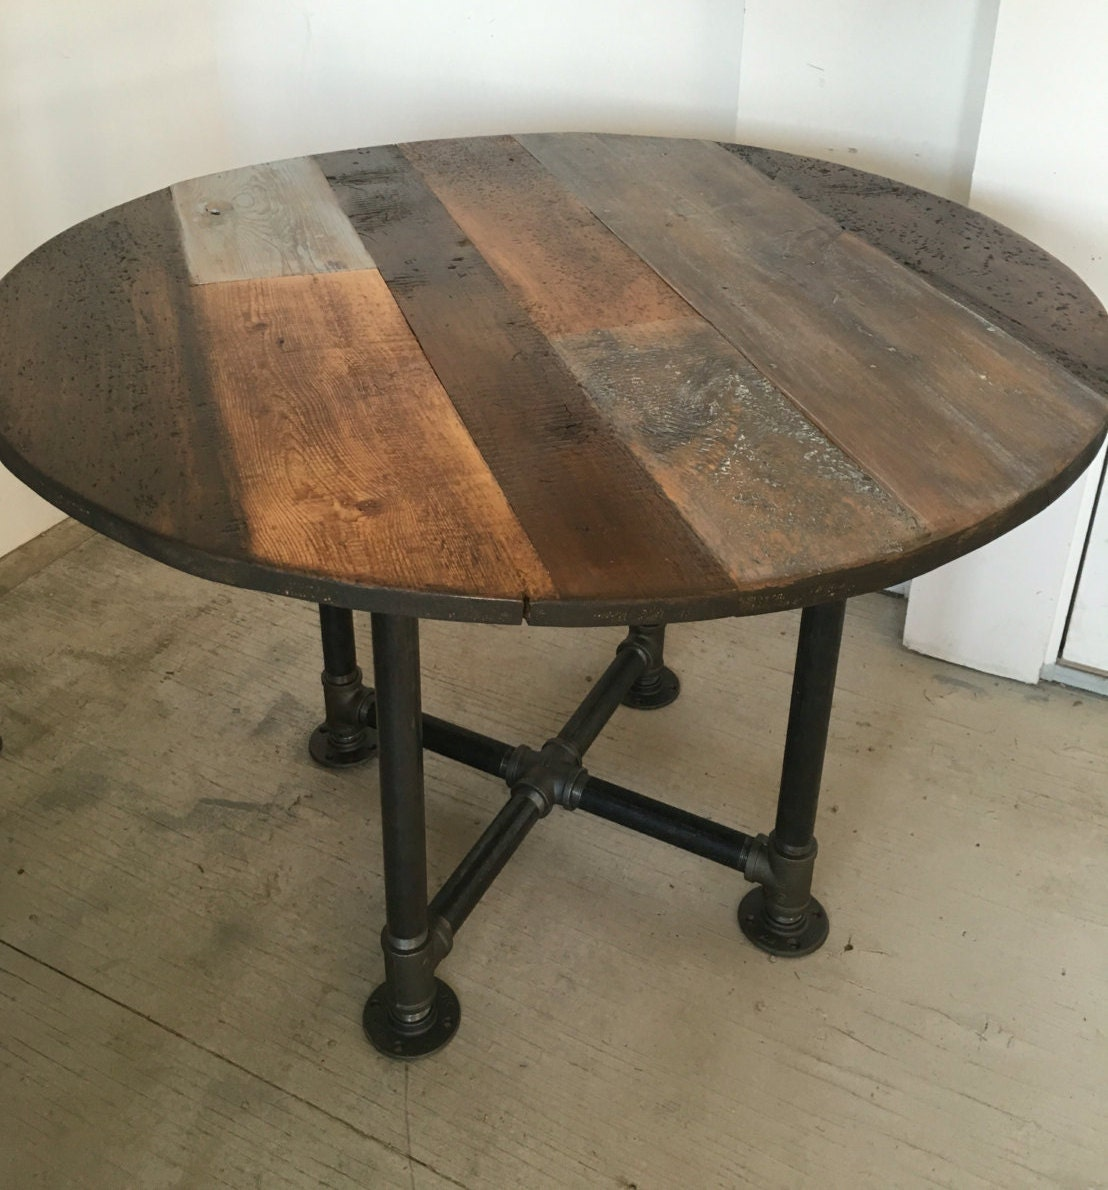 Round table dining tablepipe leg base reclaimed wood planks for Circle furniture dining tables